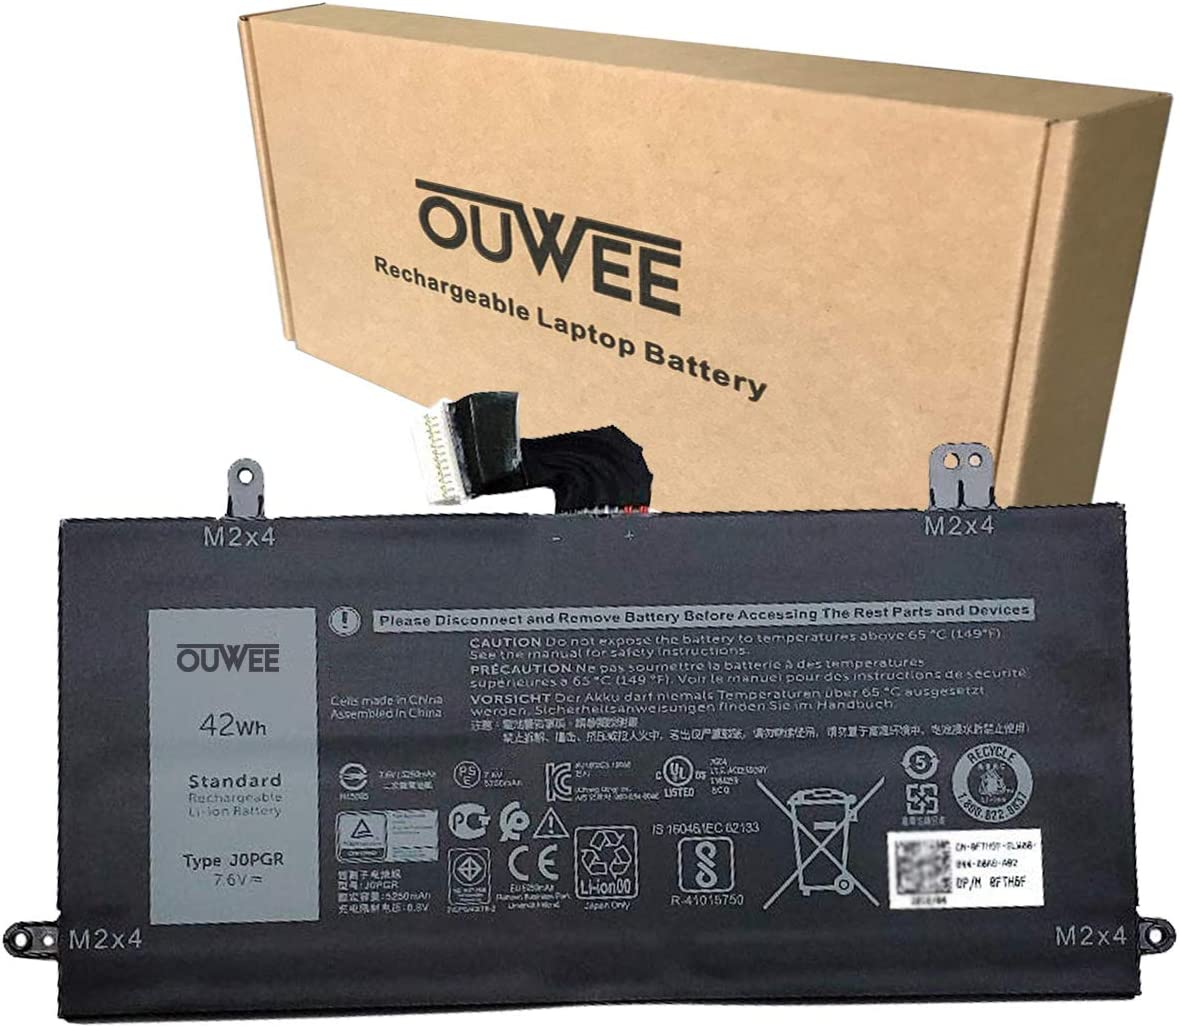 OUWEE J0PGR Laptop Battery Compatible with Dell Latitude 12 5285 5290 2-in-1 Tablet Series Notebook 0J0PGR 1WND8 X16TW FTH6F 0FTH6F 7.6V 42Wh 5250mAh